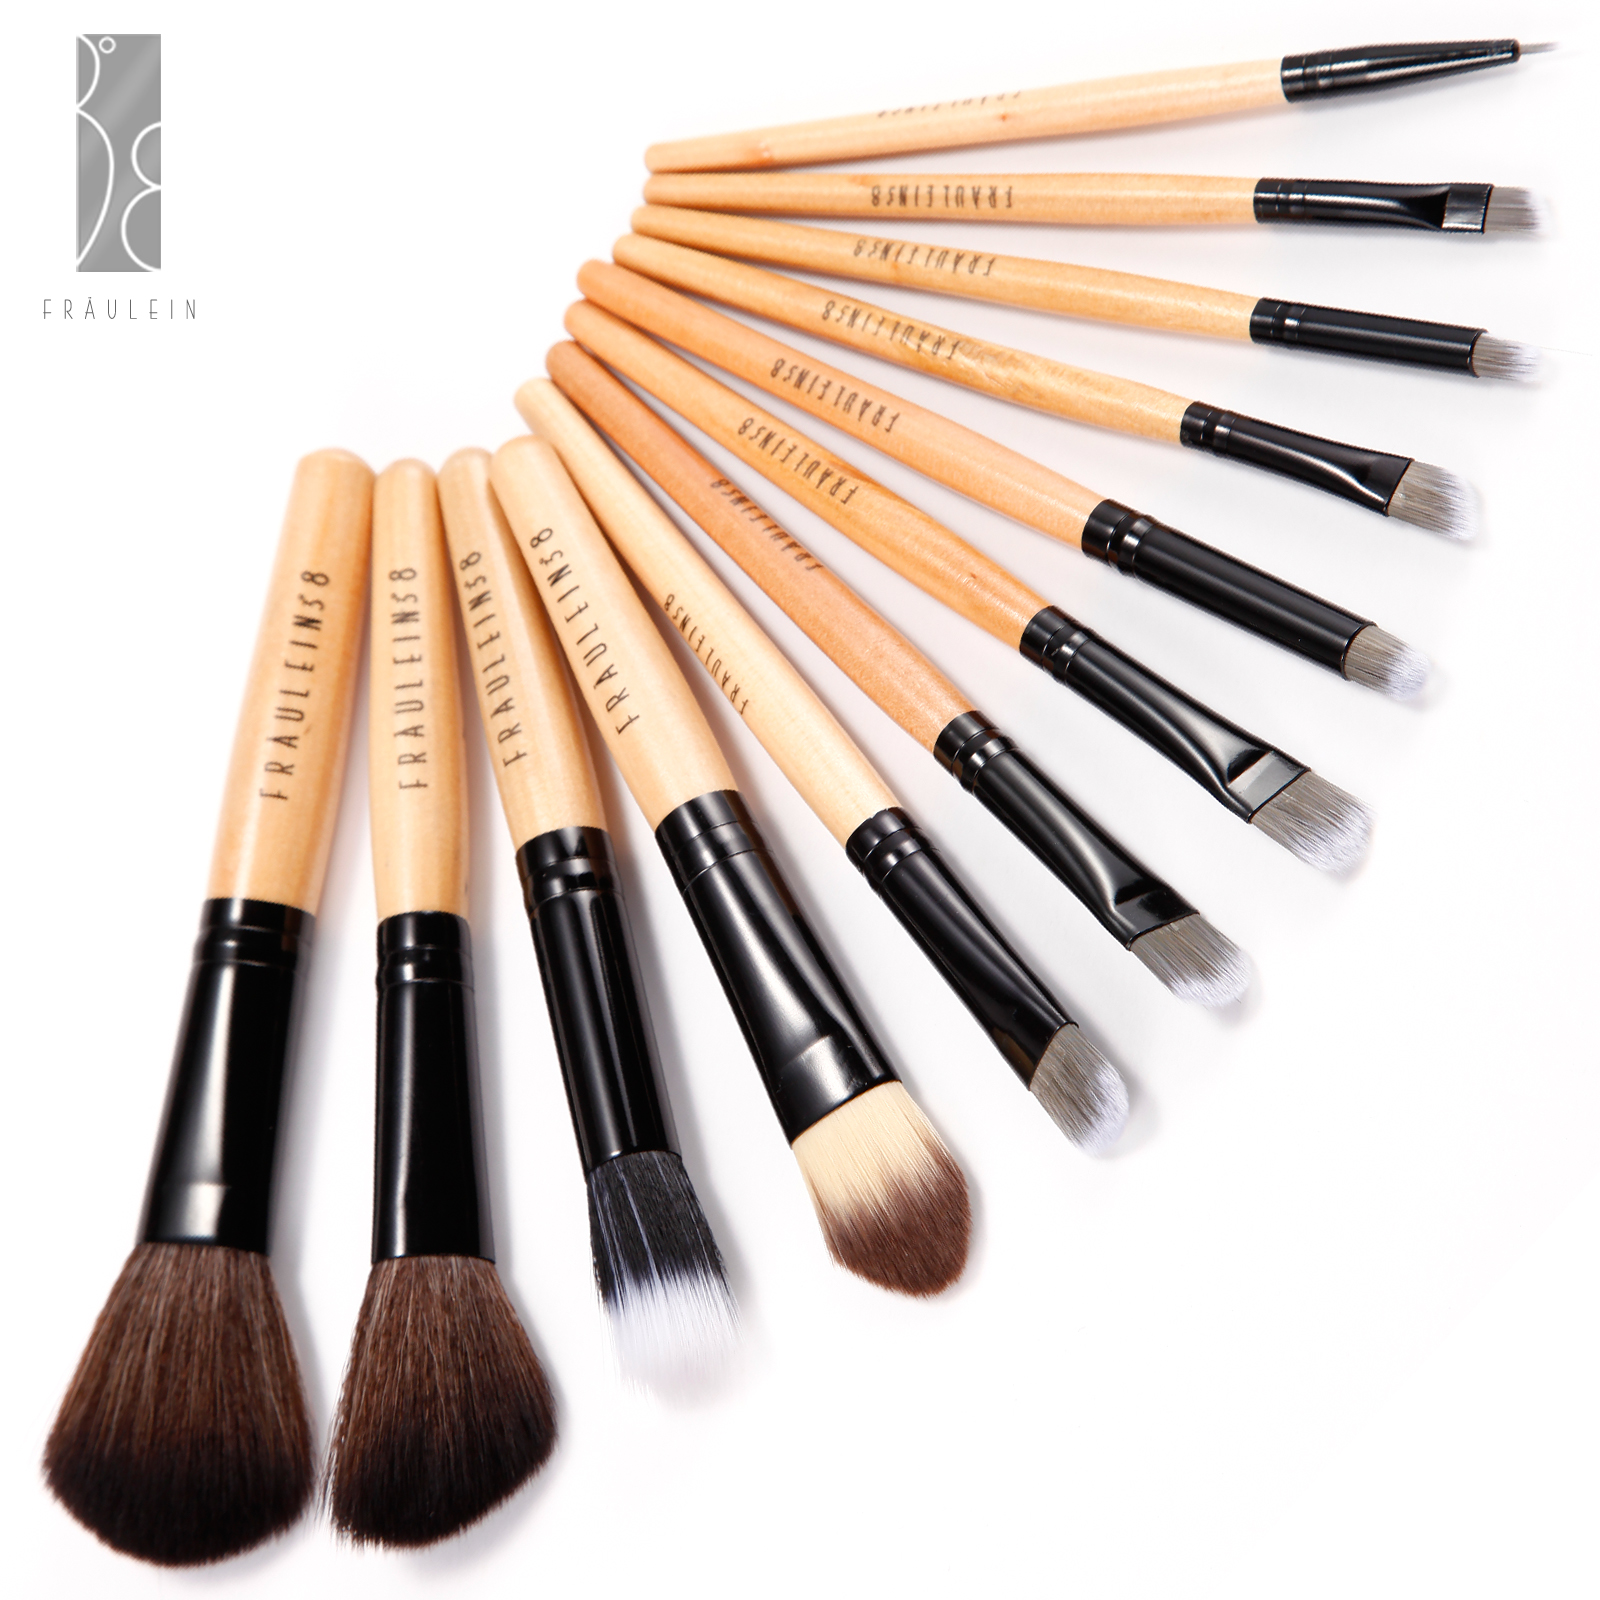 fraulein3 8 12 tlg pinsel set brush set kosmetik mit tasche etui schlage motive ebay. Black Bedroom Furniture Sets. Home Design Ideas